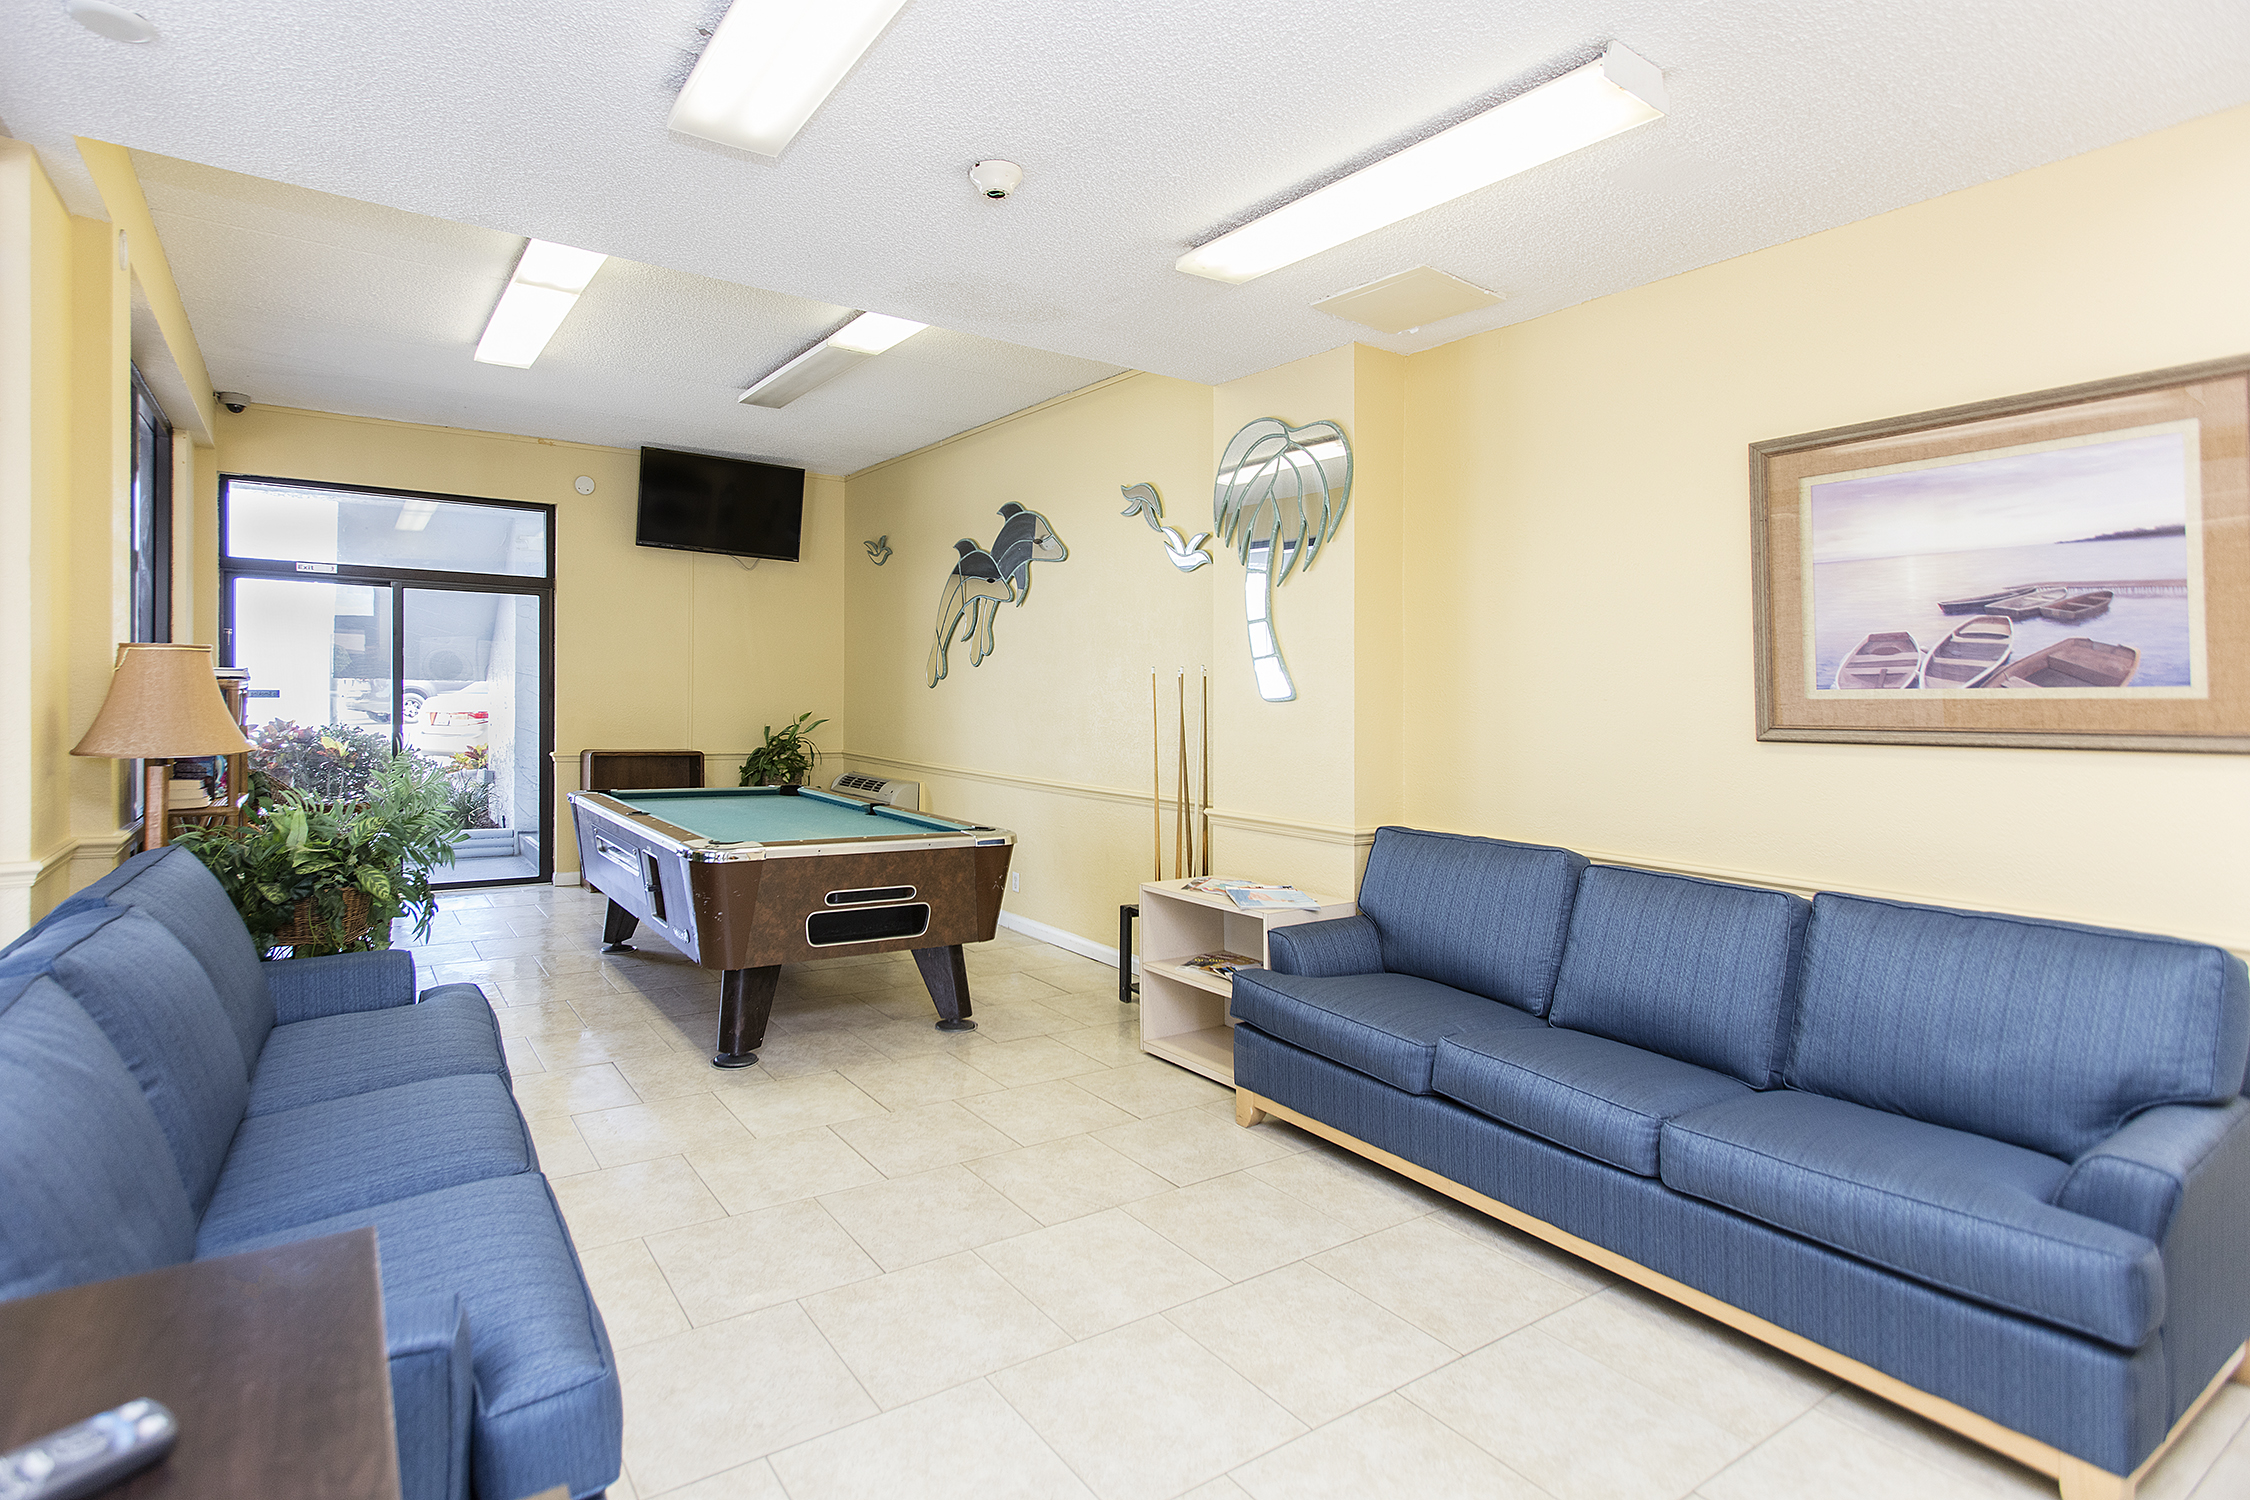 Located In Sunny Daytona Beach Ss Seven Seas Resort Features A Pool Room Fishing And More Just Few Minutes Away From